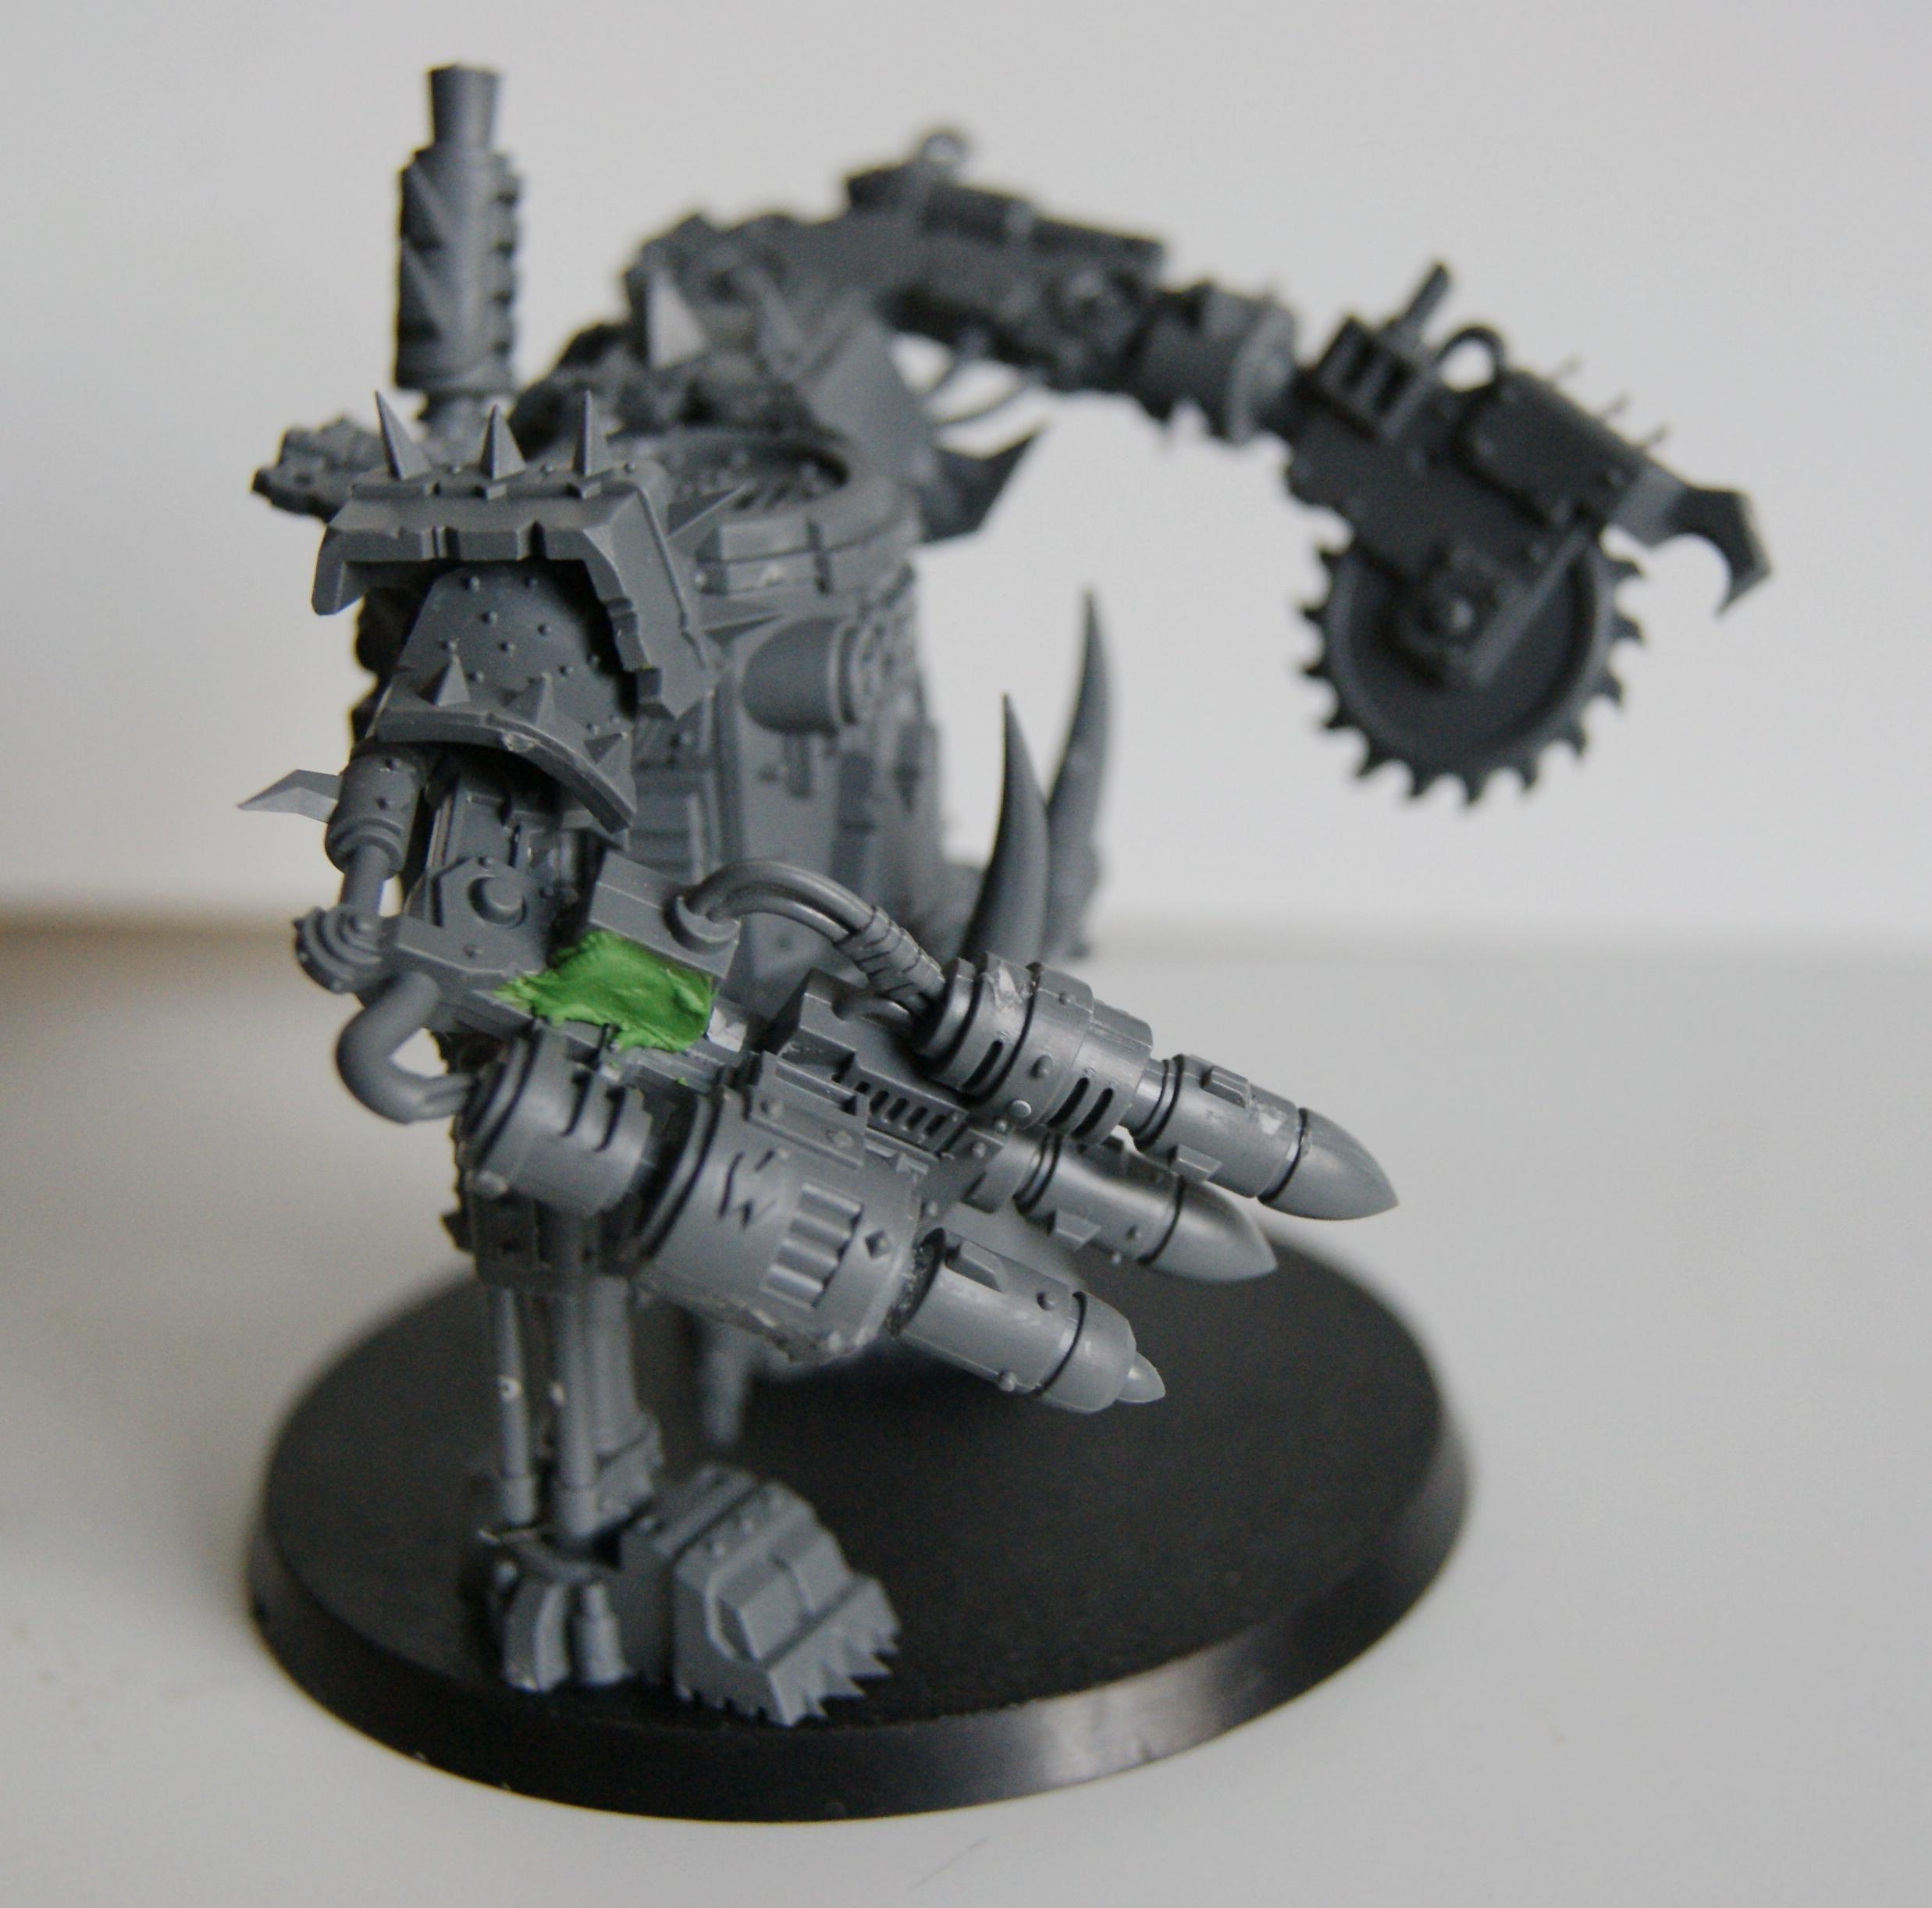 Conversion, Grot Rebellion, Grot Rebels, Grots, Killa Kan, Orks, Warhammer 40,000